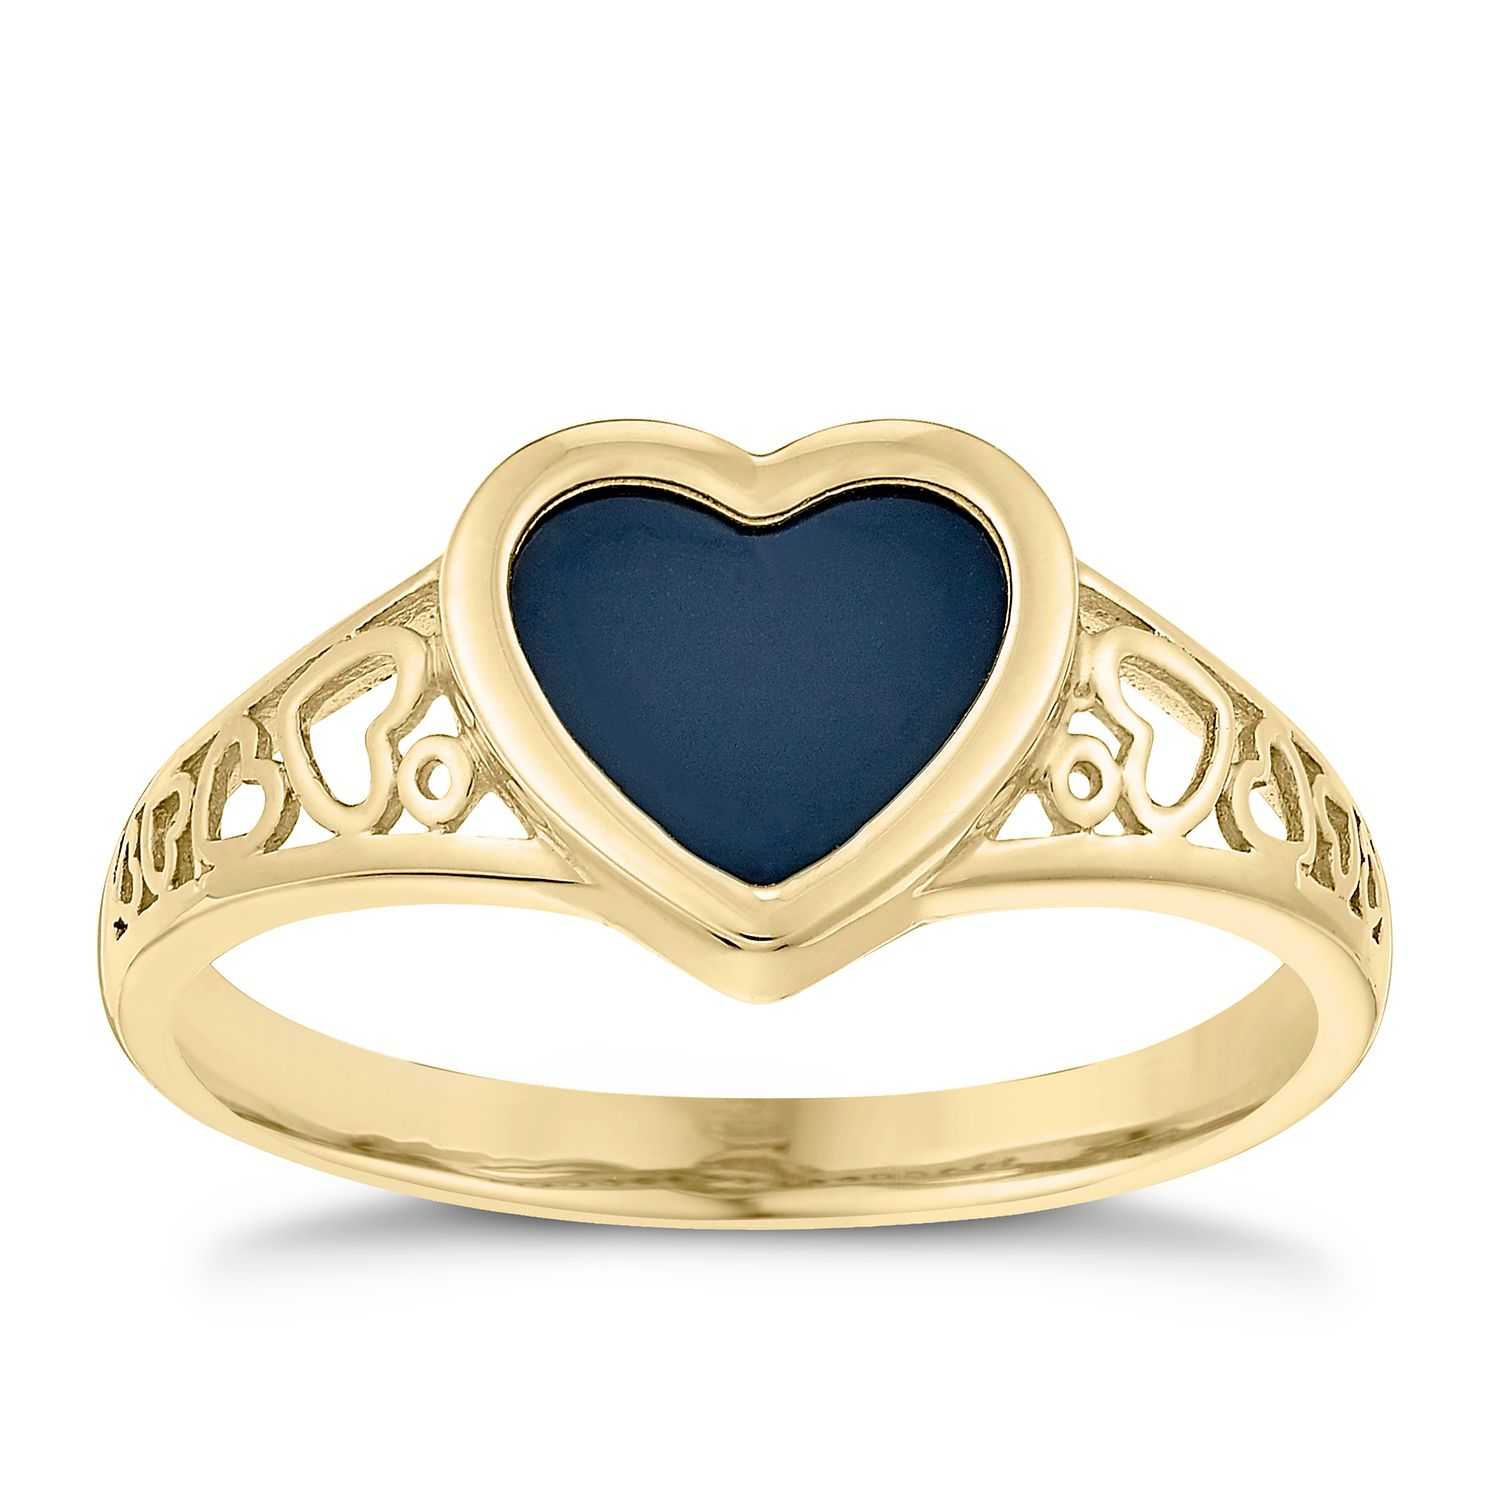 9ct Gold Onyx Heart Signet Ring - Product number 3803430